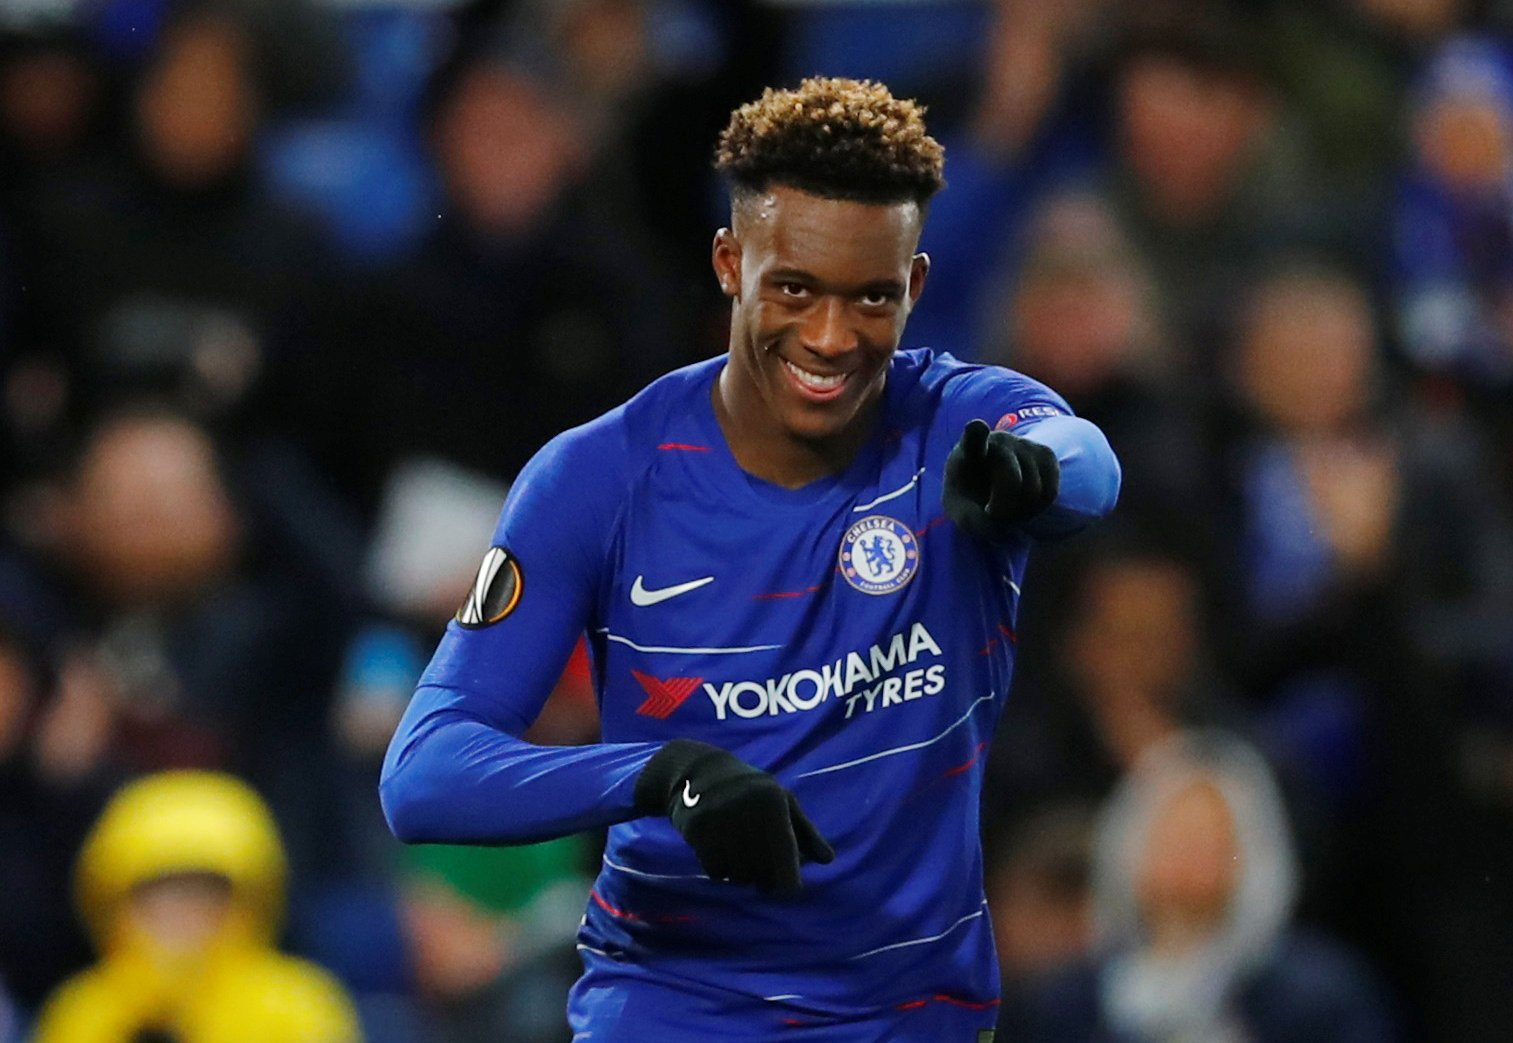 Chelsea fans on Twitter were left shocked when Sarri subbed on Hudson-Odoi